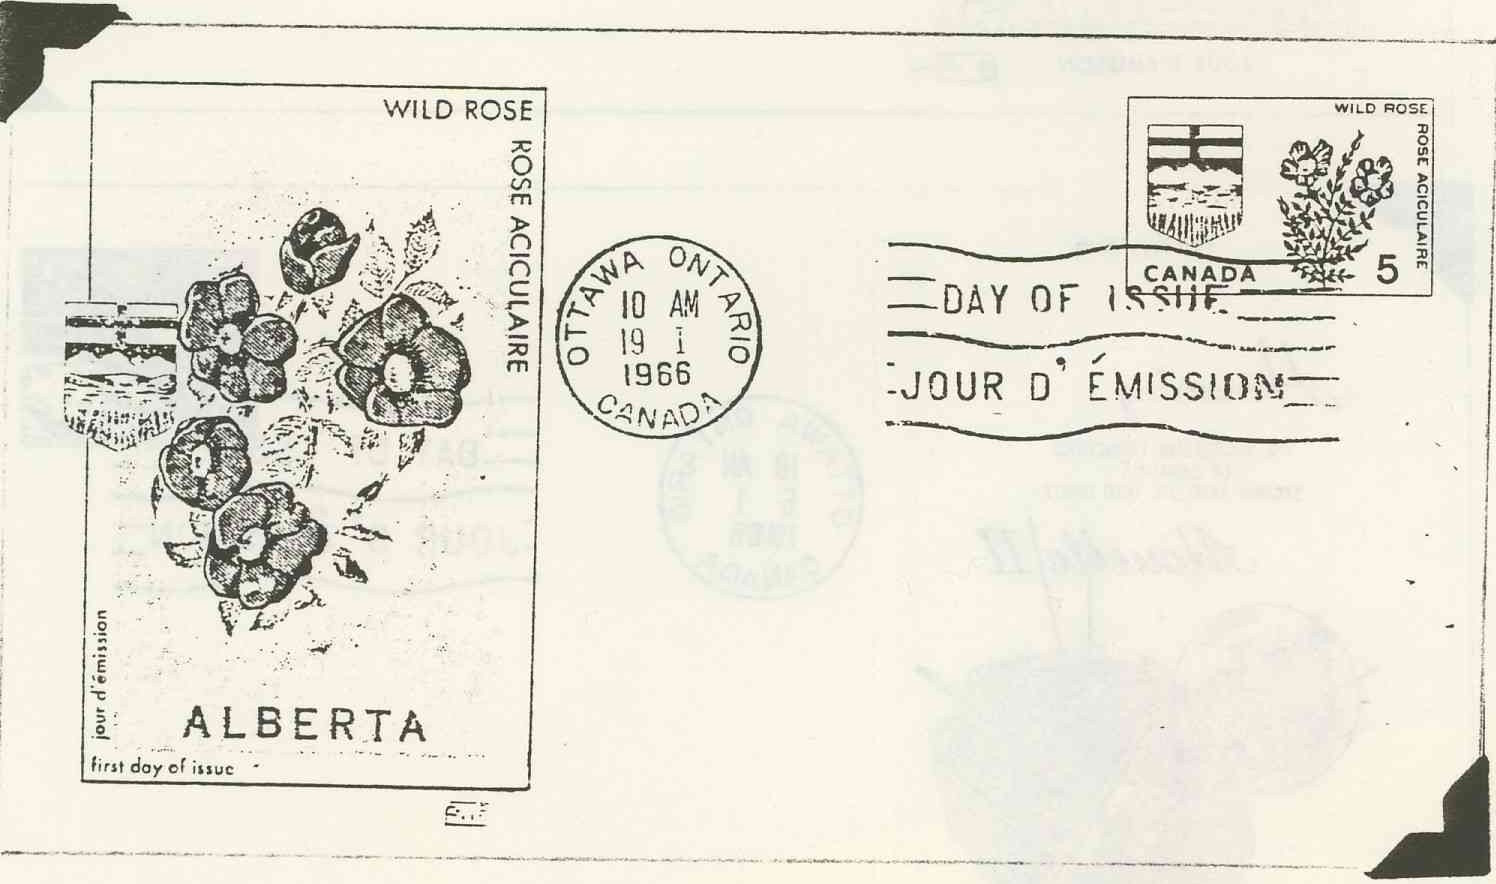 Postage First Class Letter To Canada 2016 - How to Calculate Postage ...